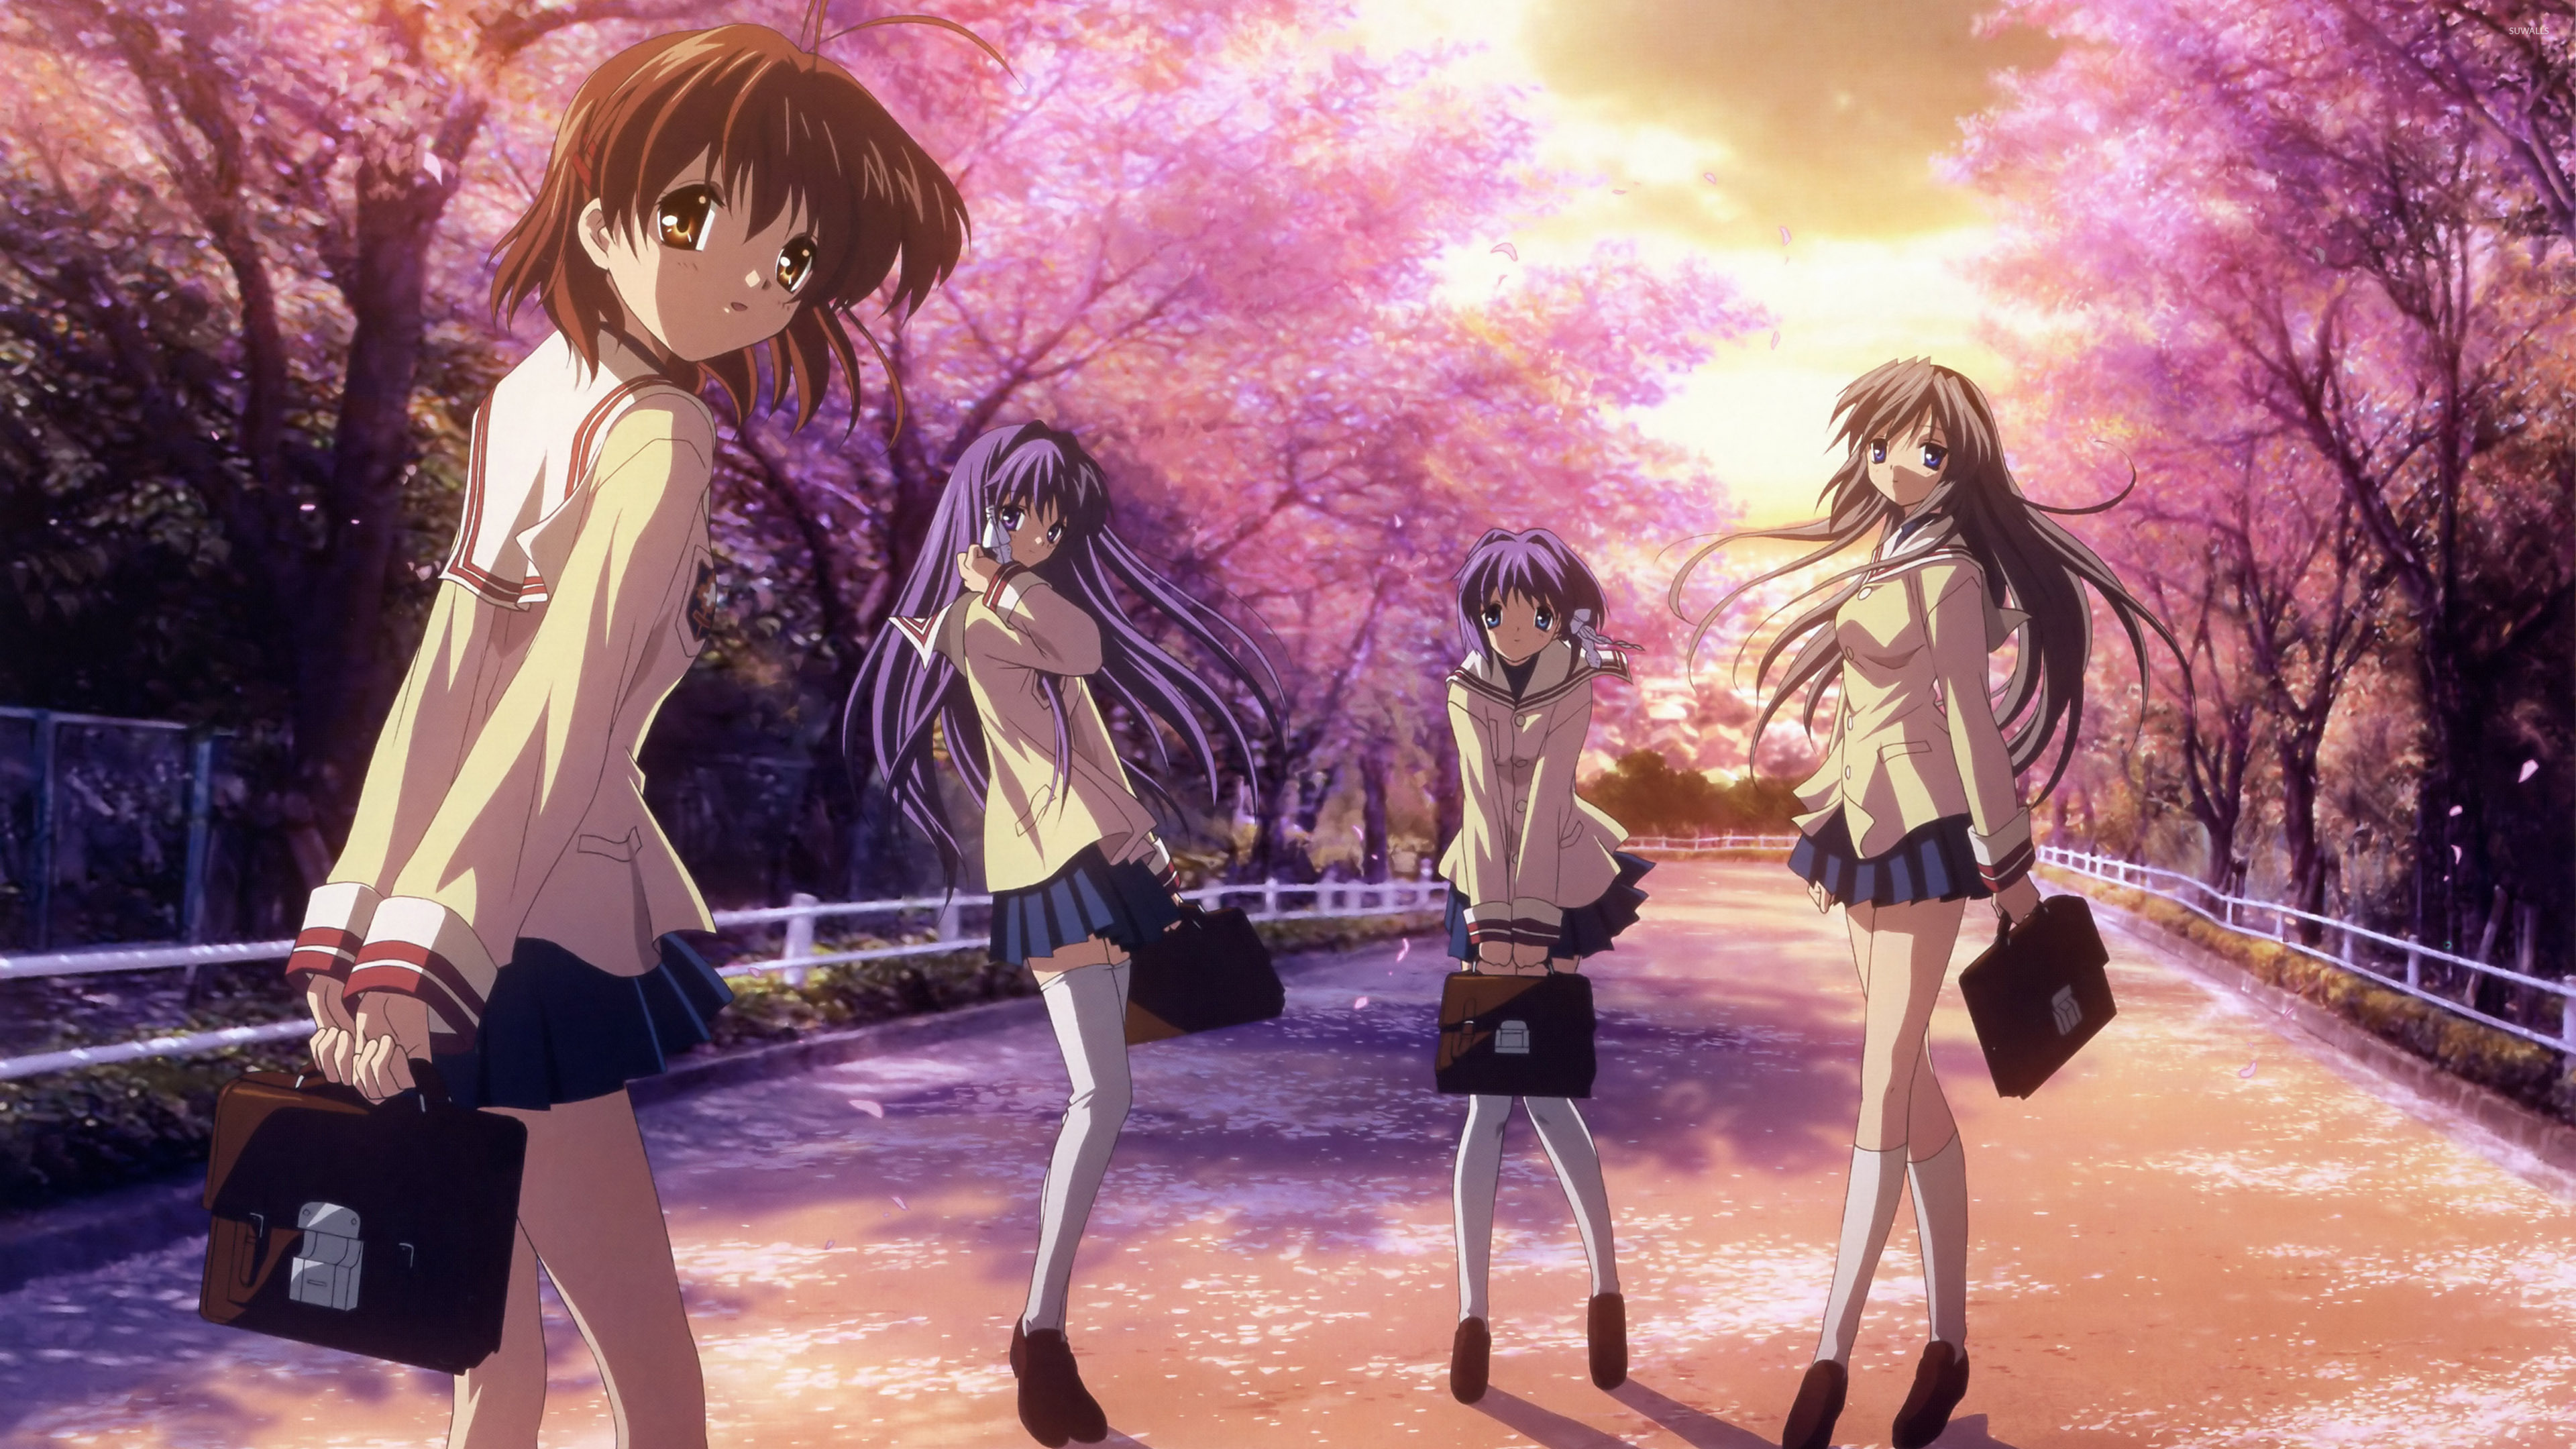 Clannad 2 Wallpaper Anime Wallpapers 33361